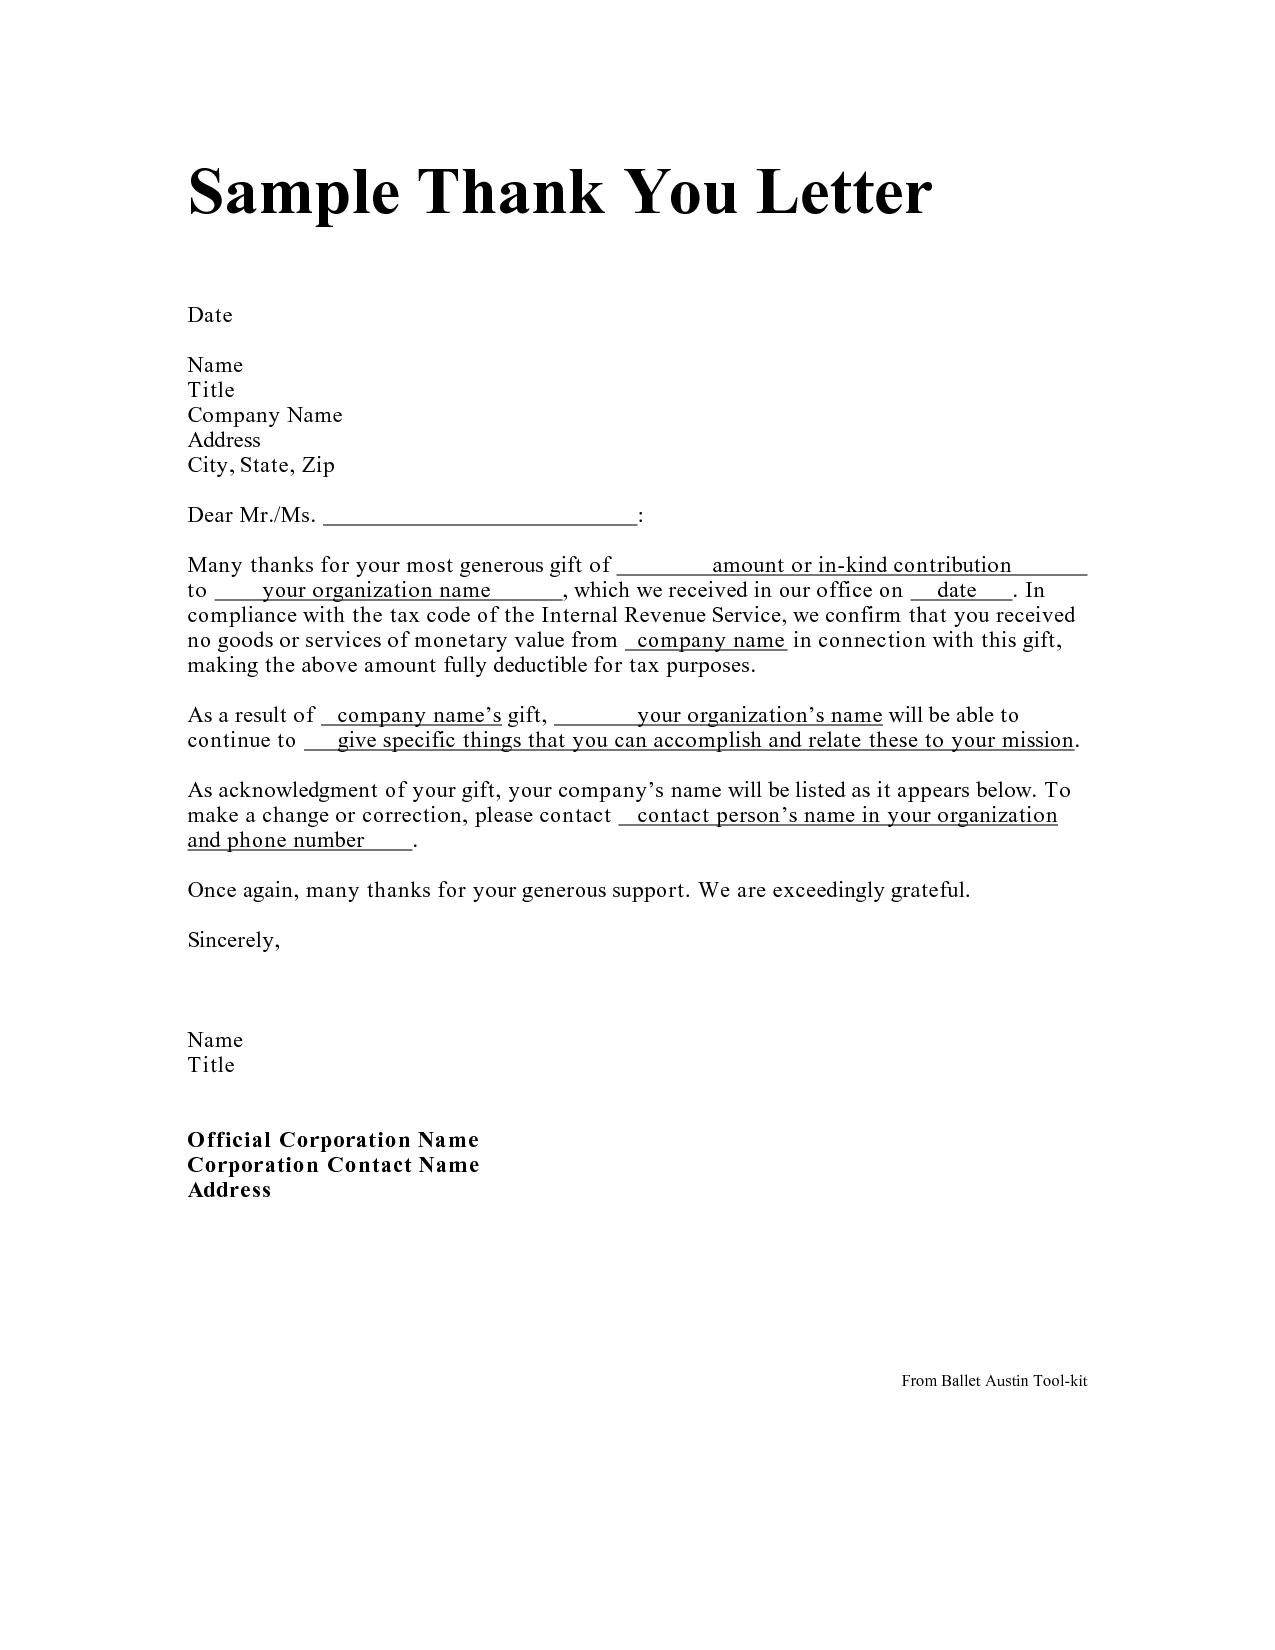 Charitable Contribution Letter Template - Personal Thank You Letter Personal Thank You Letter Samples